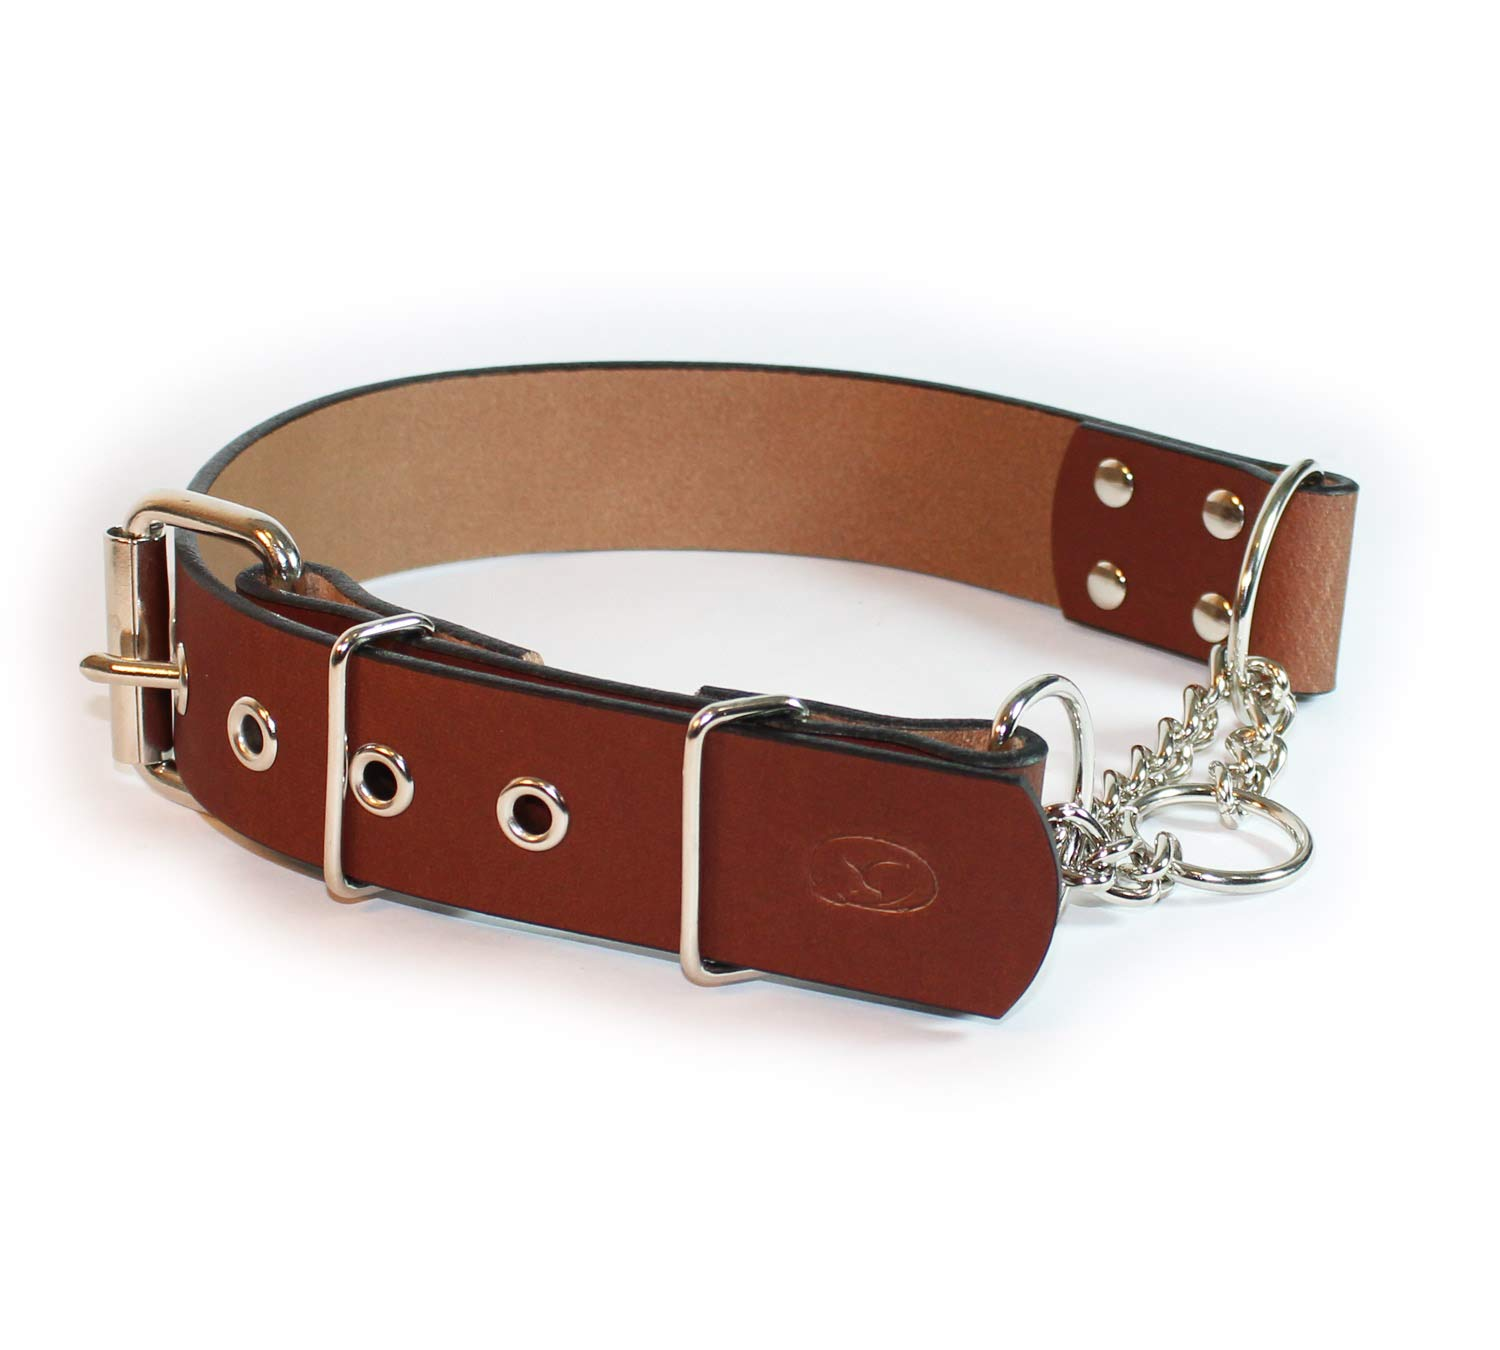 sleepy pup Big Dog Adjustable 1.5'' Leather Martingale Chain Dog Collar - Made in The USA (X-Large: 22''-26'', Light Brown)